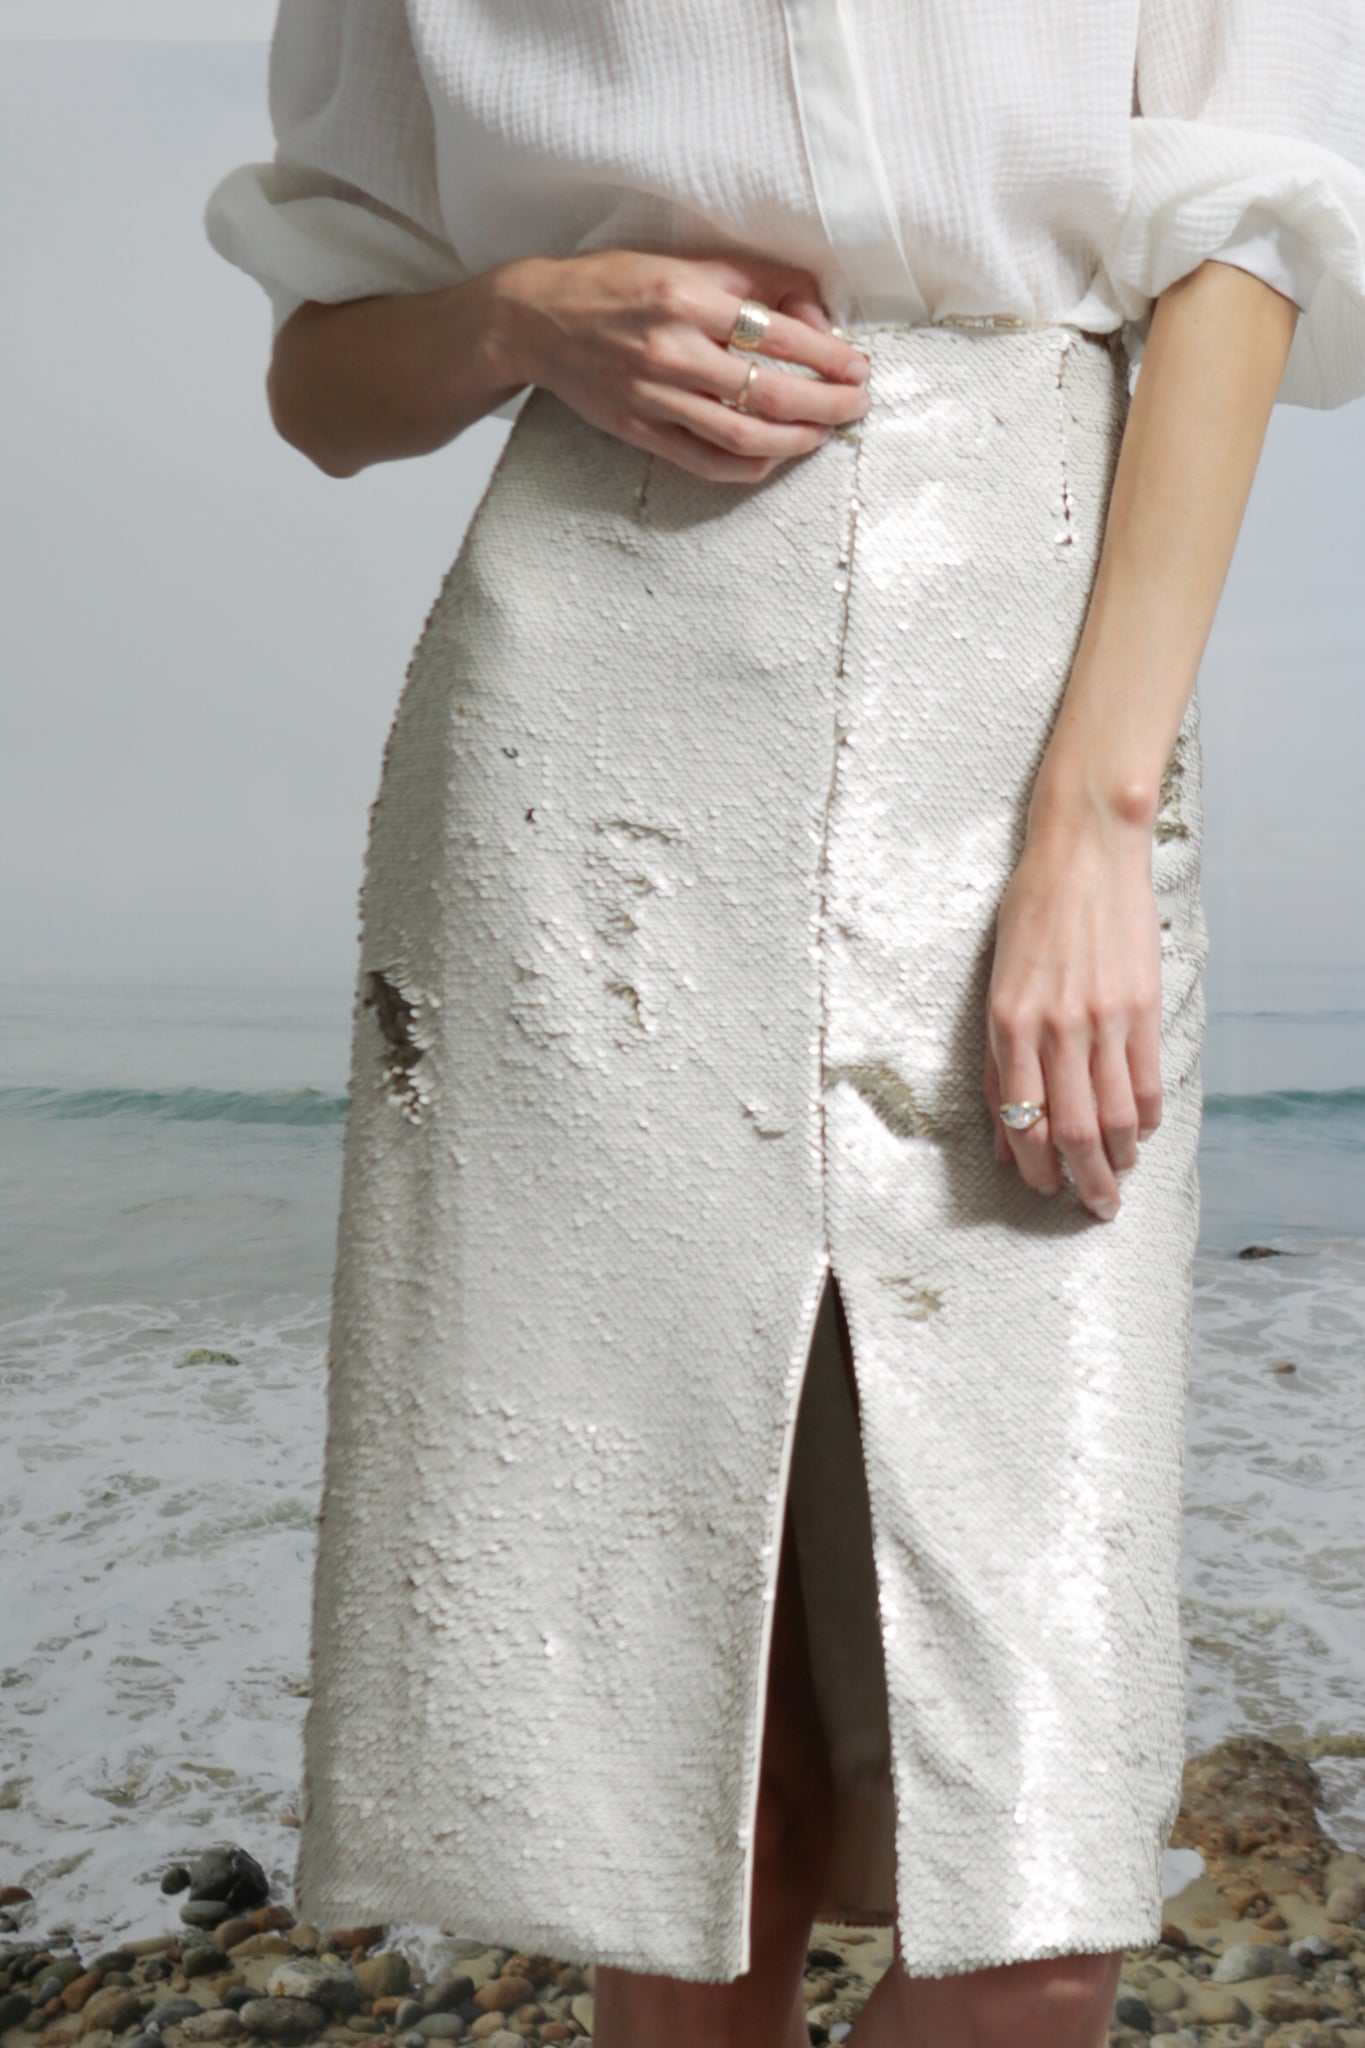 Model wears size 2 EMBER SKIRT - SNOW by Heidi Merrick made in Downtown Los Angeles